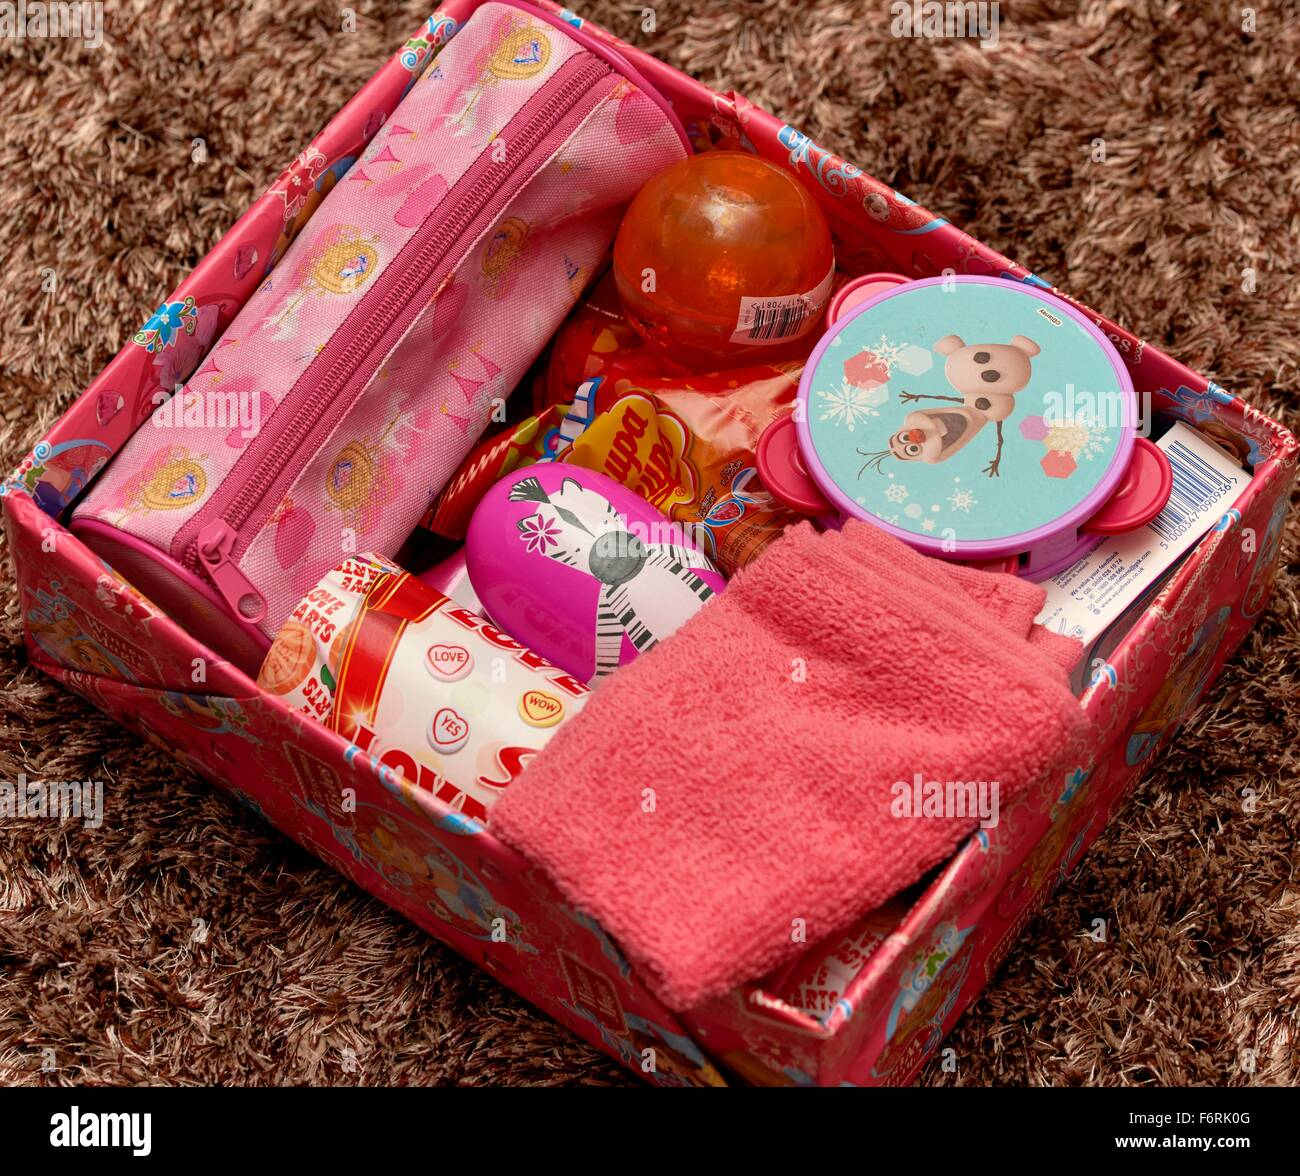 Christmas Shoe Box Appeal.A Charity Appeal Shoe Box With Presents For A Girl Stock